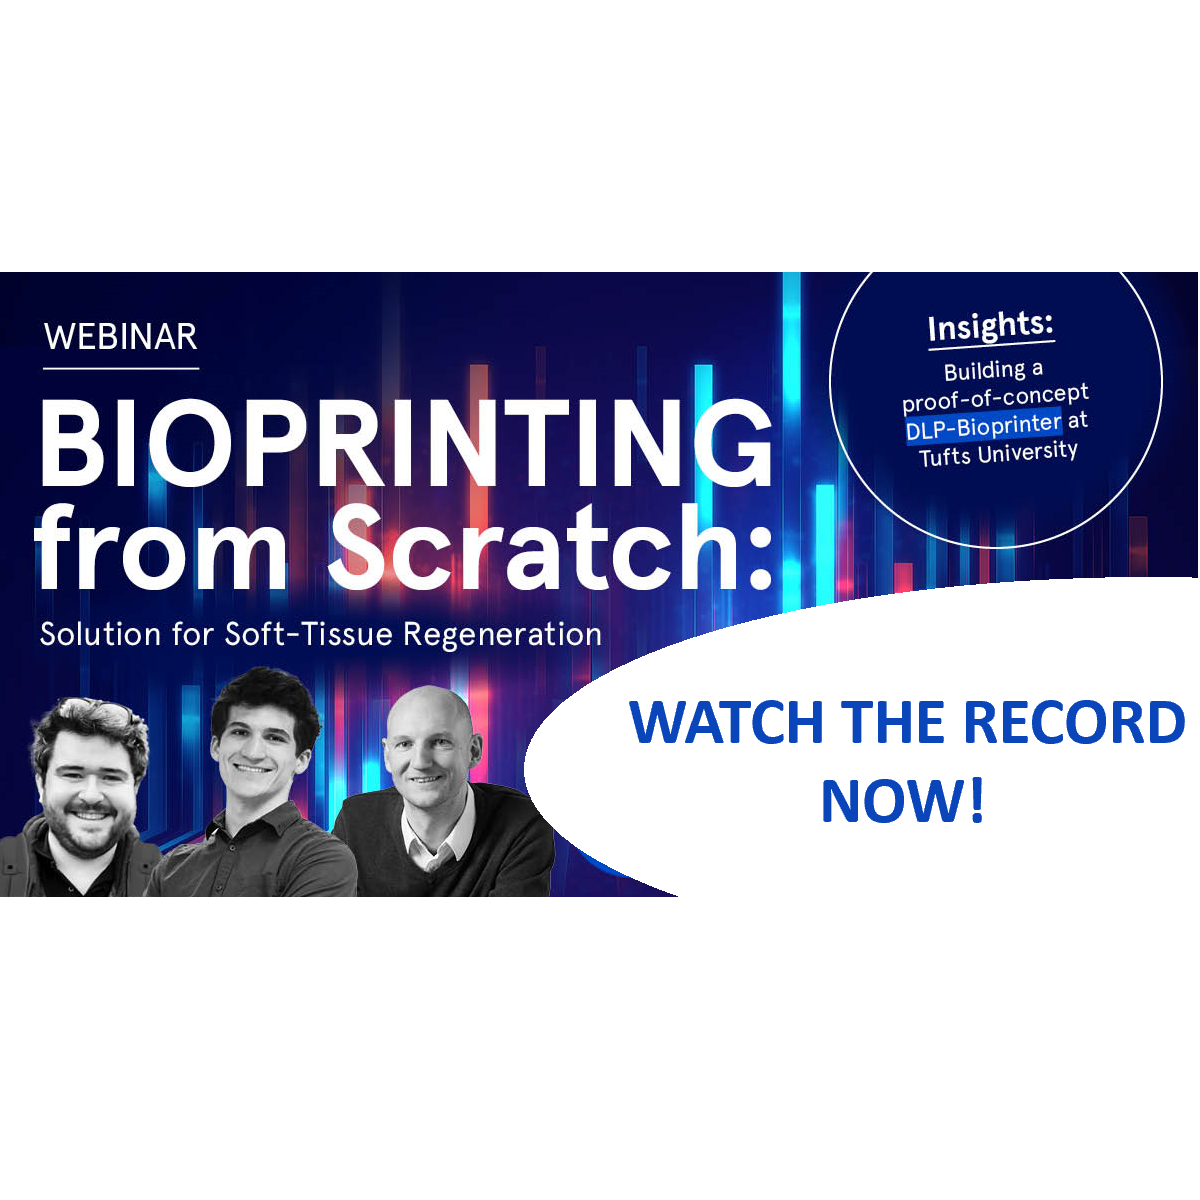 Watch the record from the Webinar